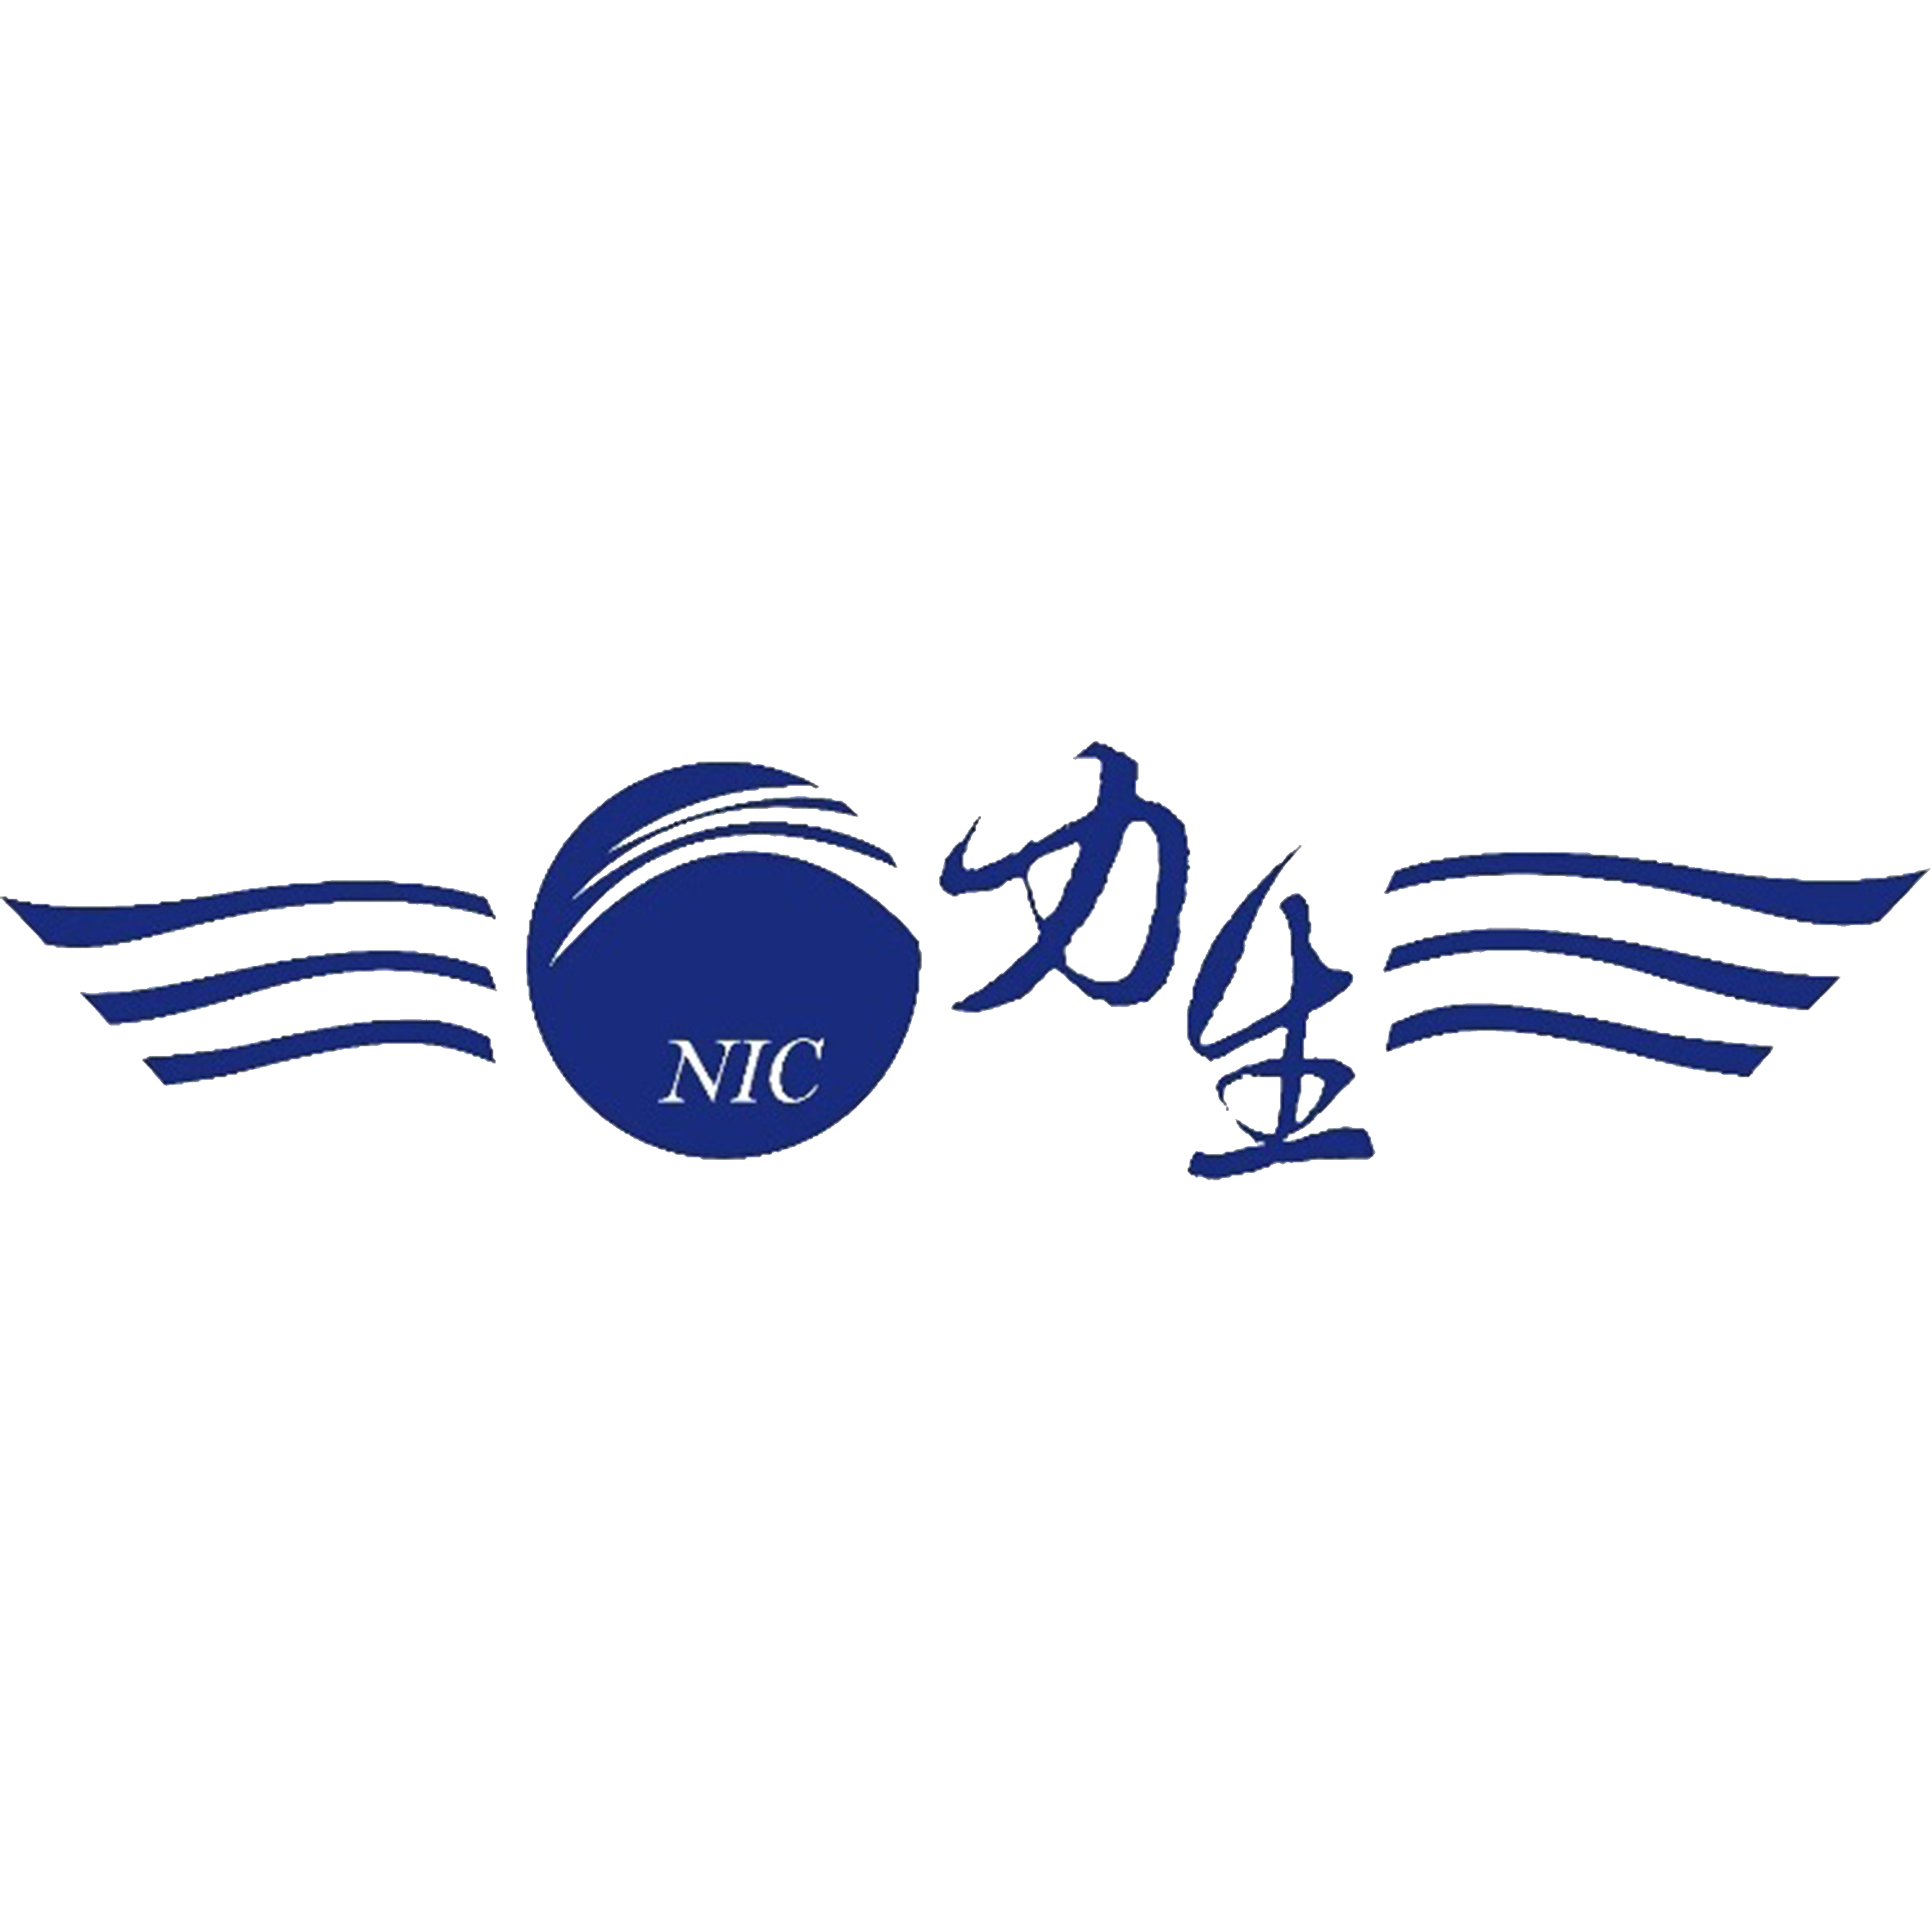 Nic Sang International Ltd.